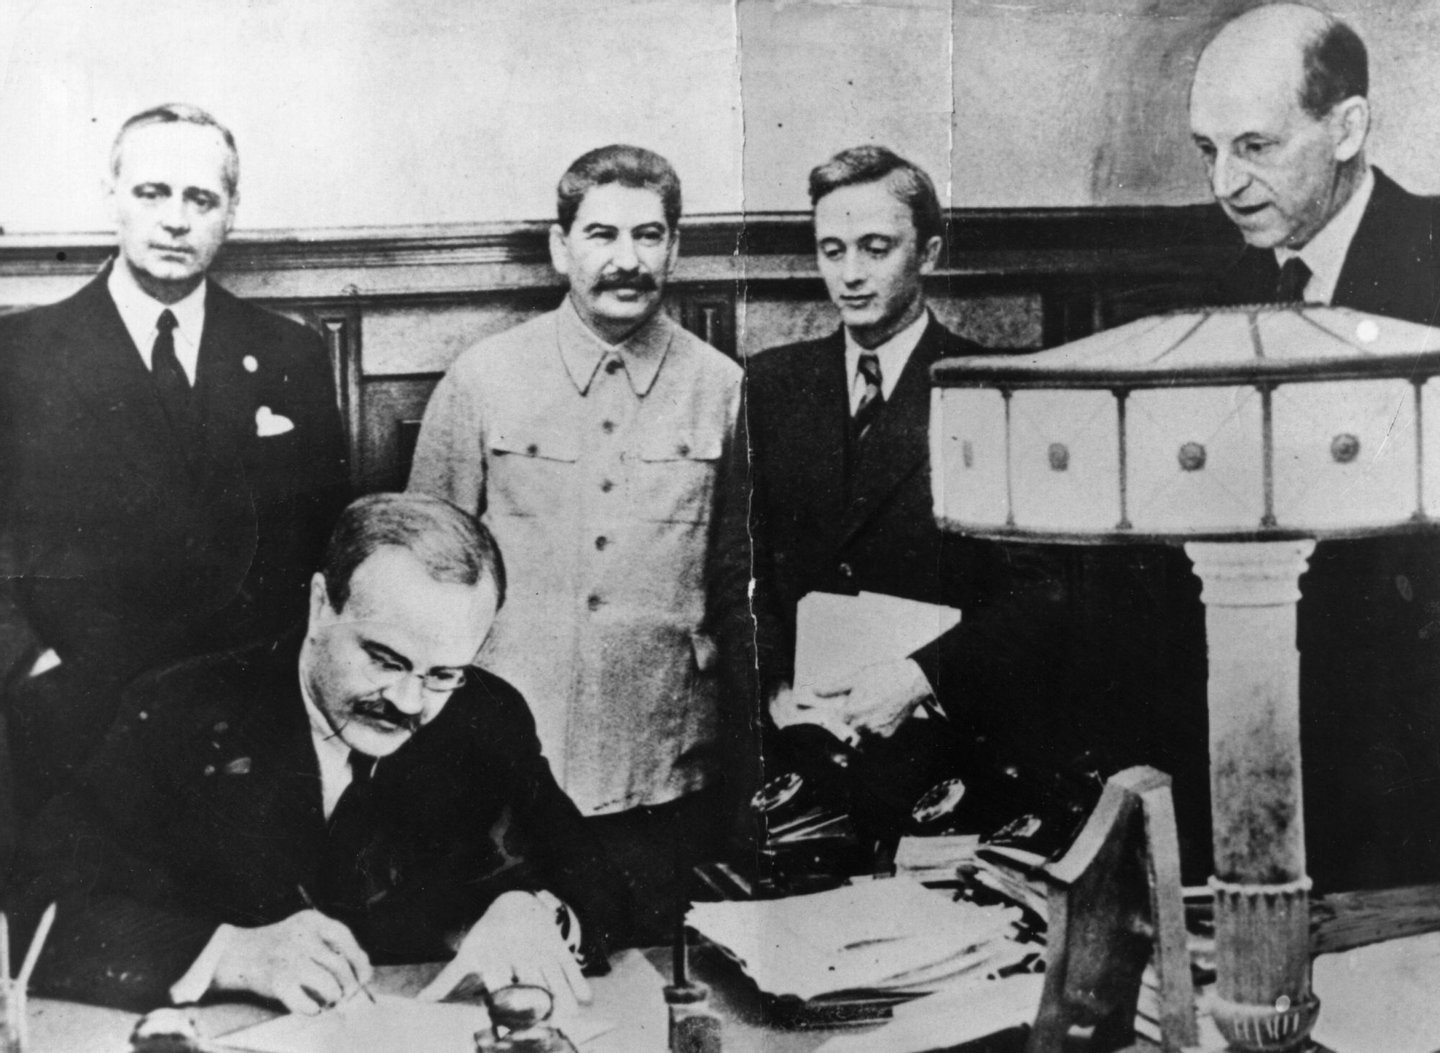 23rd August 1939: Vyacheslav Molotov, Russian Foreign Minister, signs the non-aggression pact negotiated between Soviet Russia and Germany, at the Kremlin, Moscow. Standing behind him is his German counterpart Joachim von Ribbentrop (left), and Joseph Stalin (centre). (Photo by Keystone/Getty Images)